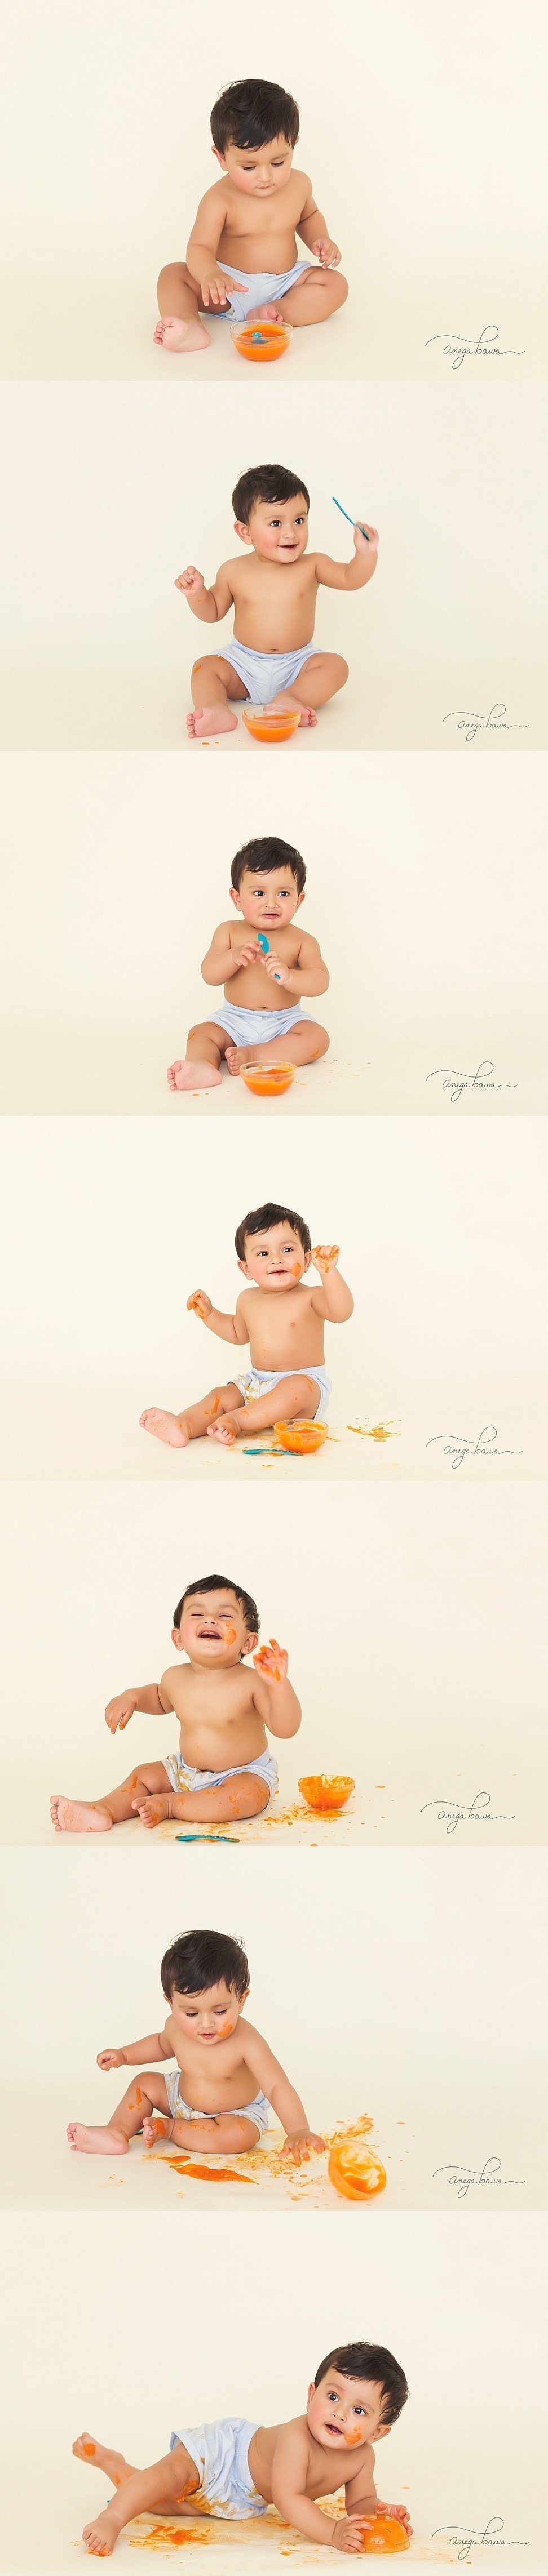 sitter_session_8-months-boy-food-smash_baby_child